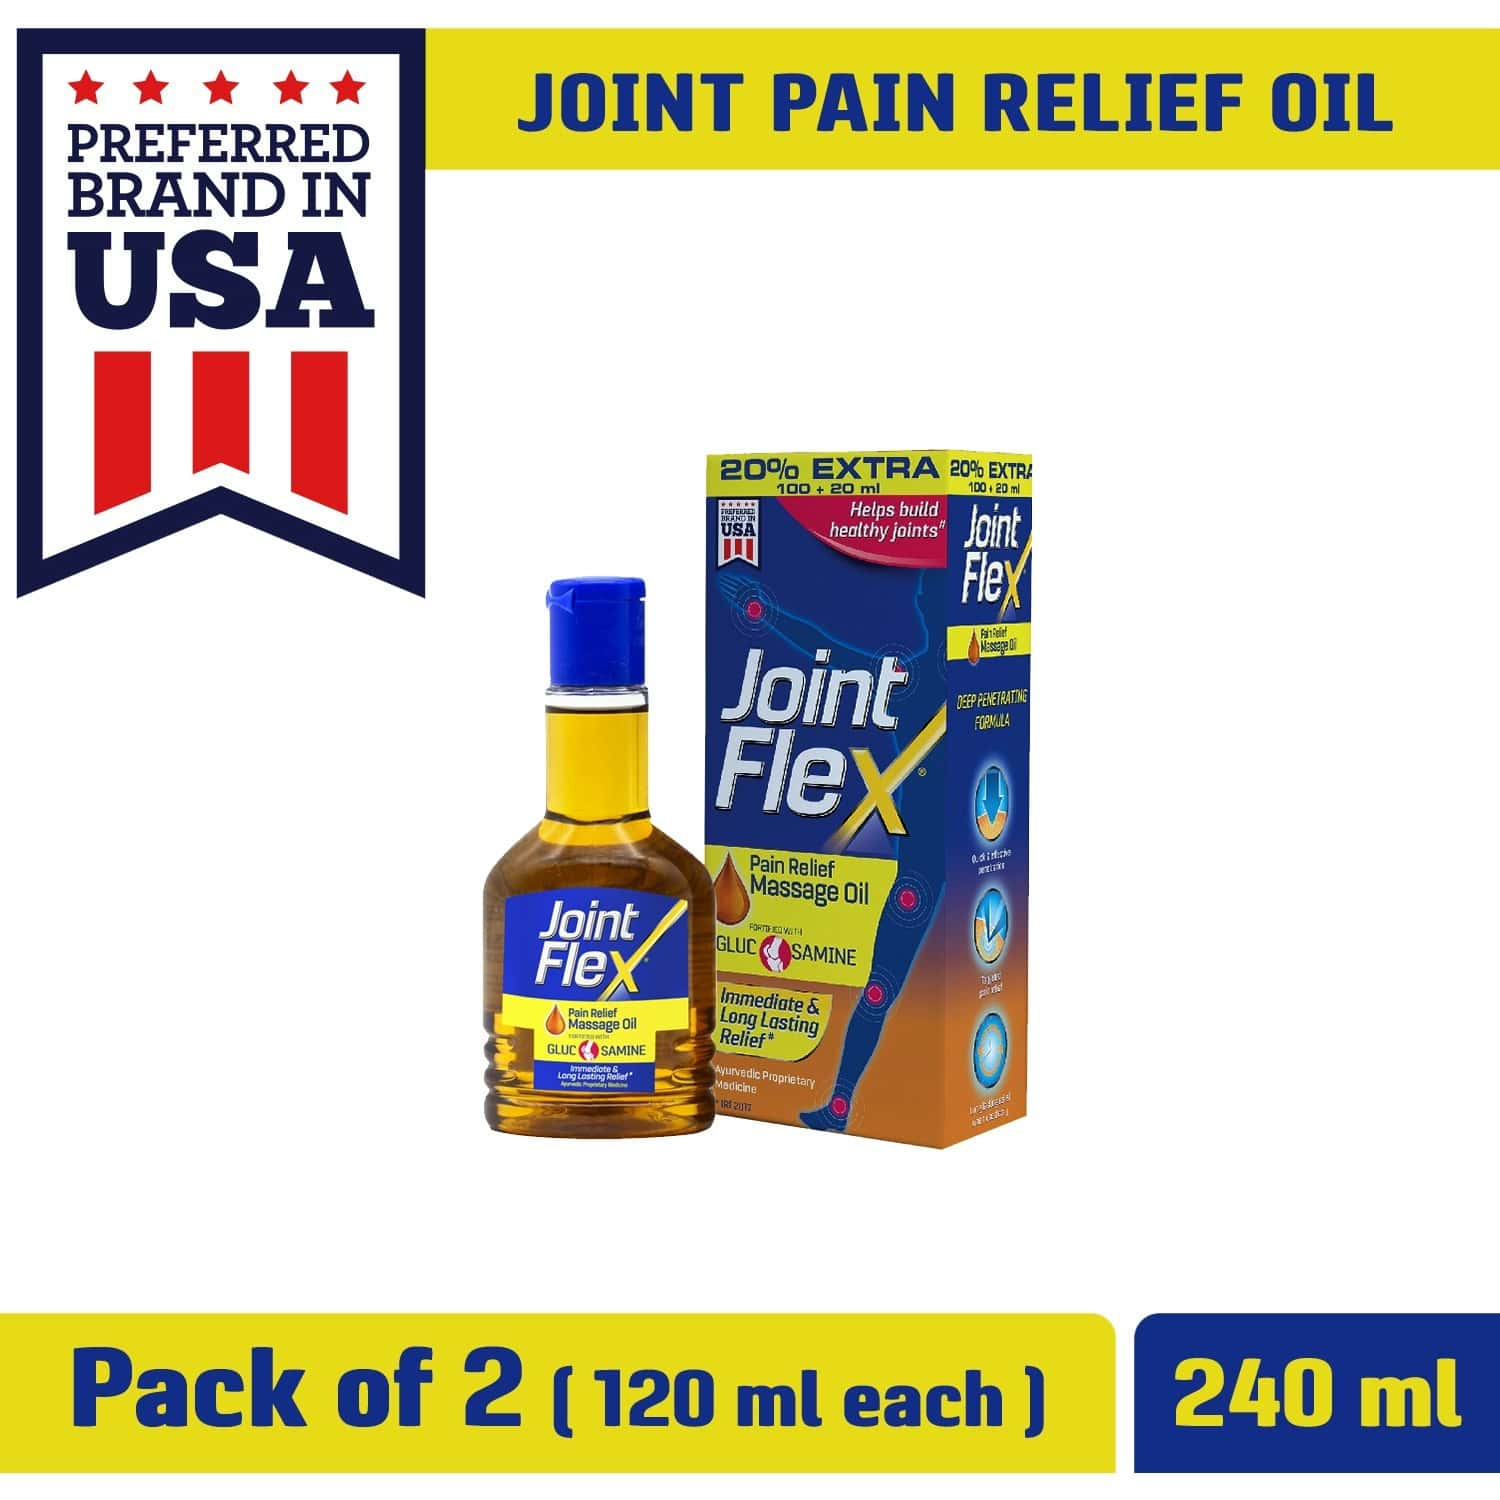 Jointflex Pain Relief Massage Oil, 120 Ml (100ml + 20ml Free) (pack Of 2) - Immediate & Long-lasting Pain Relief And Healthy Joints